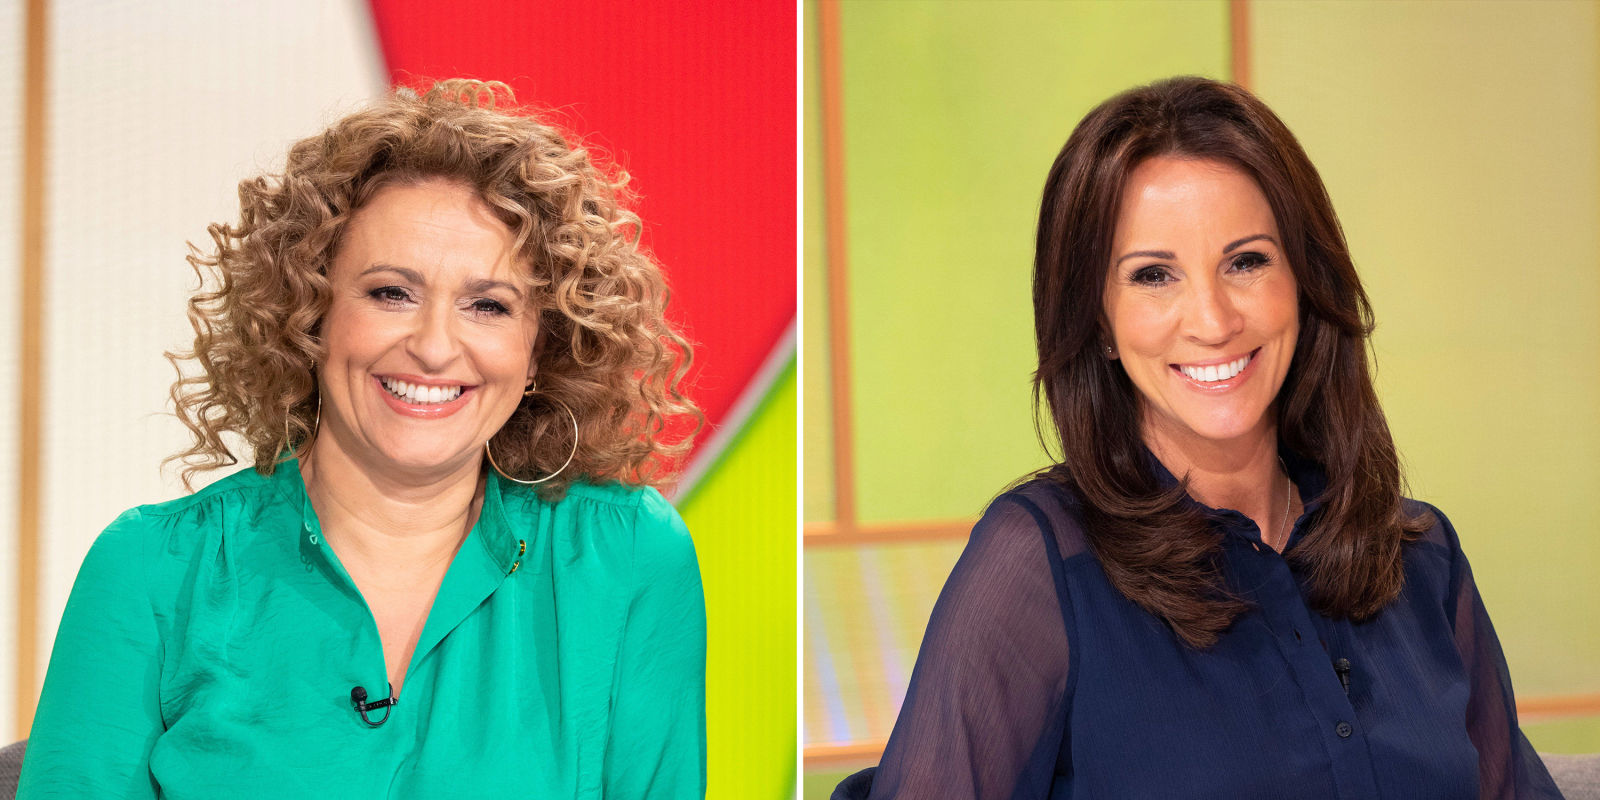 Loose Women stars Andrea McLean and Nadia Sawalha reveal their dream panel guests